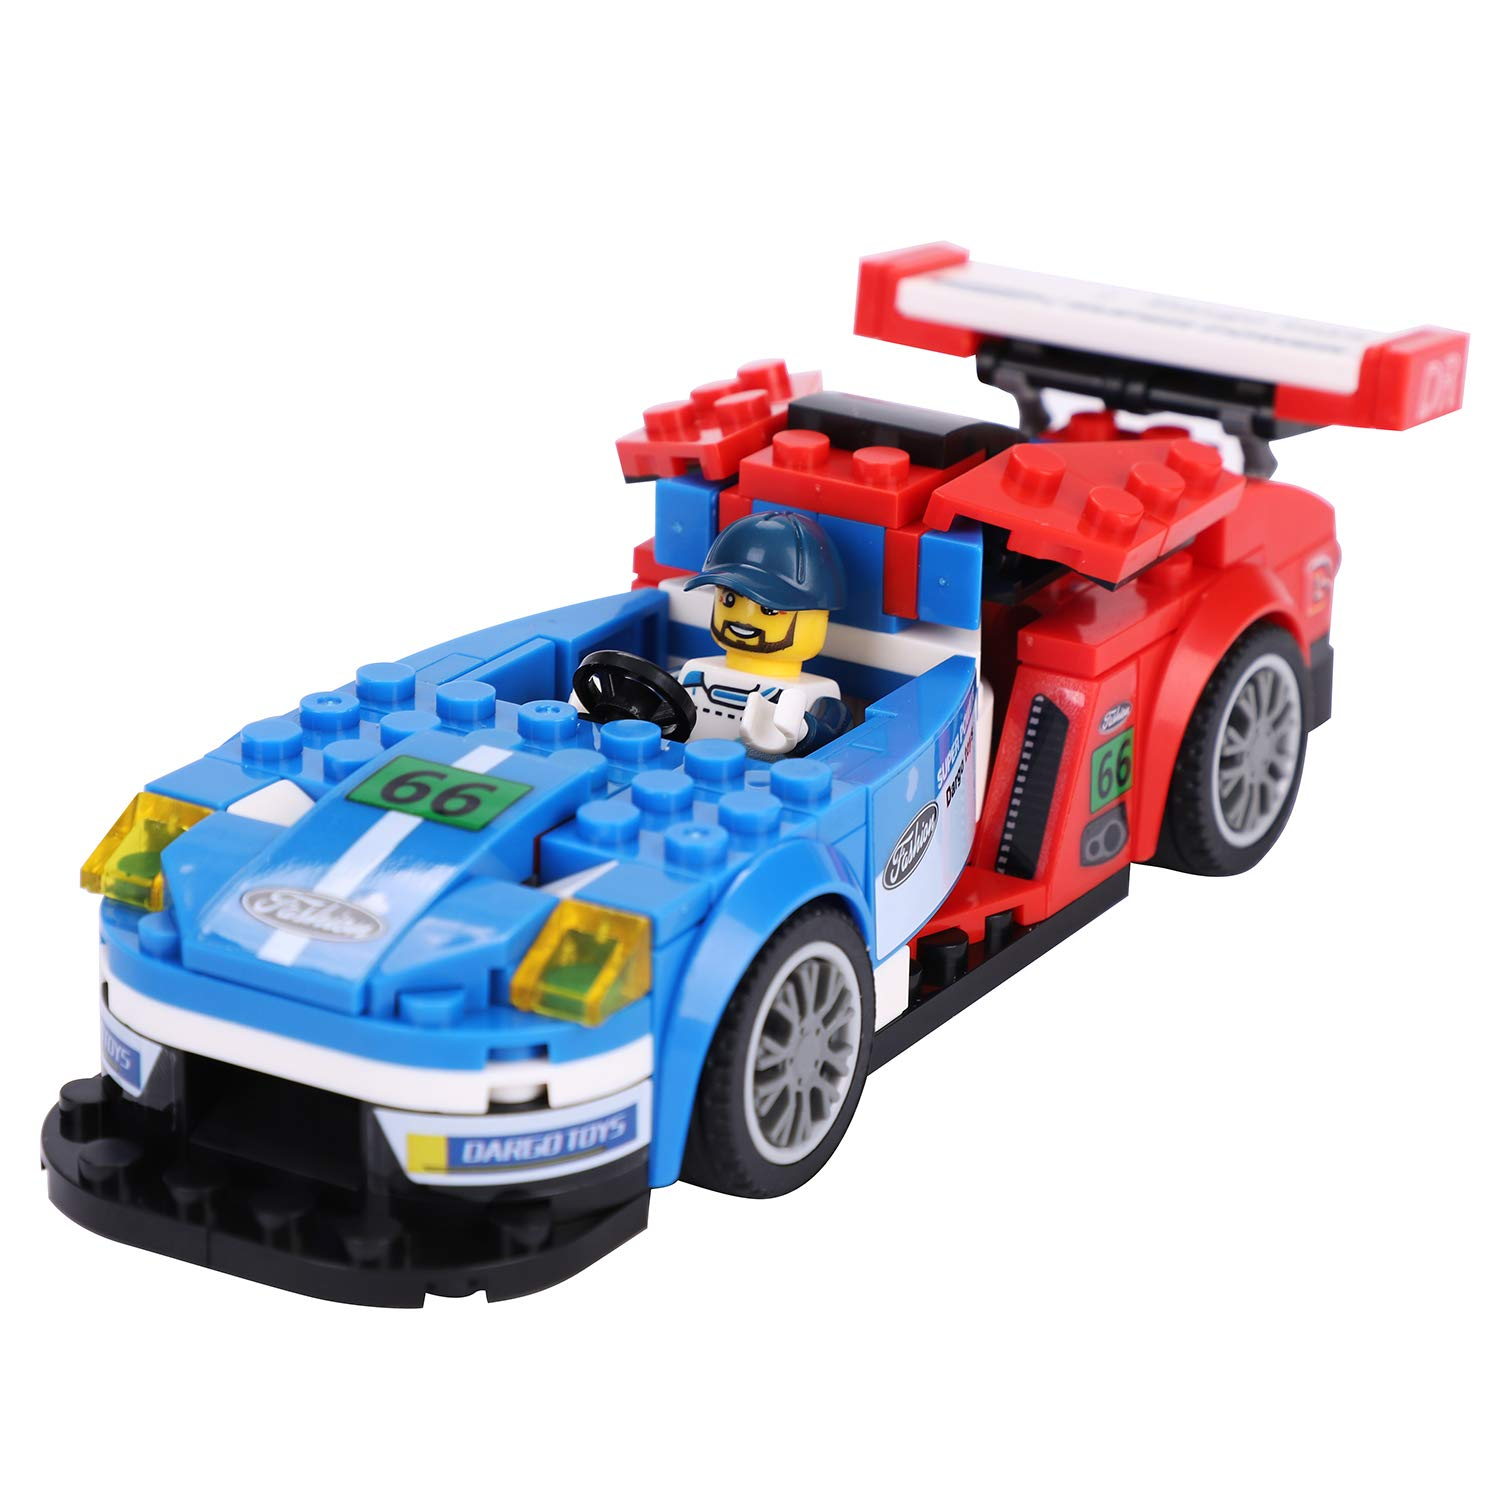 Super Cars Building Kits for Kids Toddlers STEM Construction Car Building Toys Vehicle Stacking Gear Blocks Games Traffic Early Learning Set Creative Funny Gift for boys girls with Driver Figure